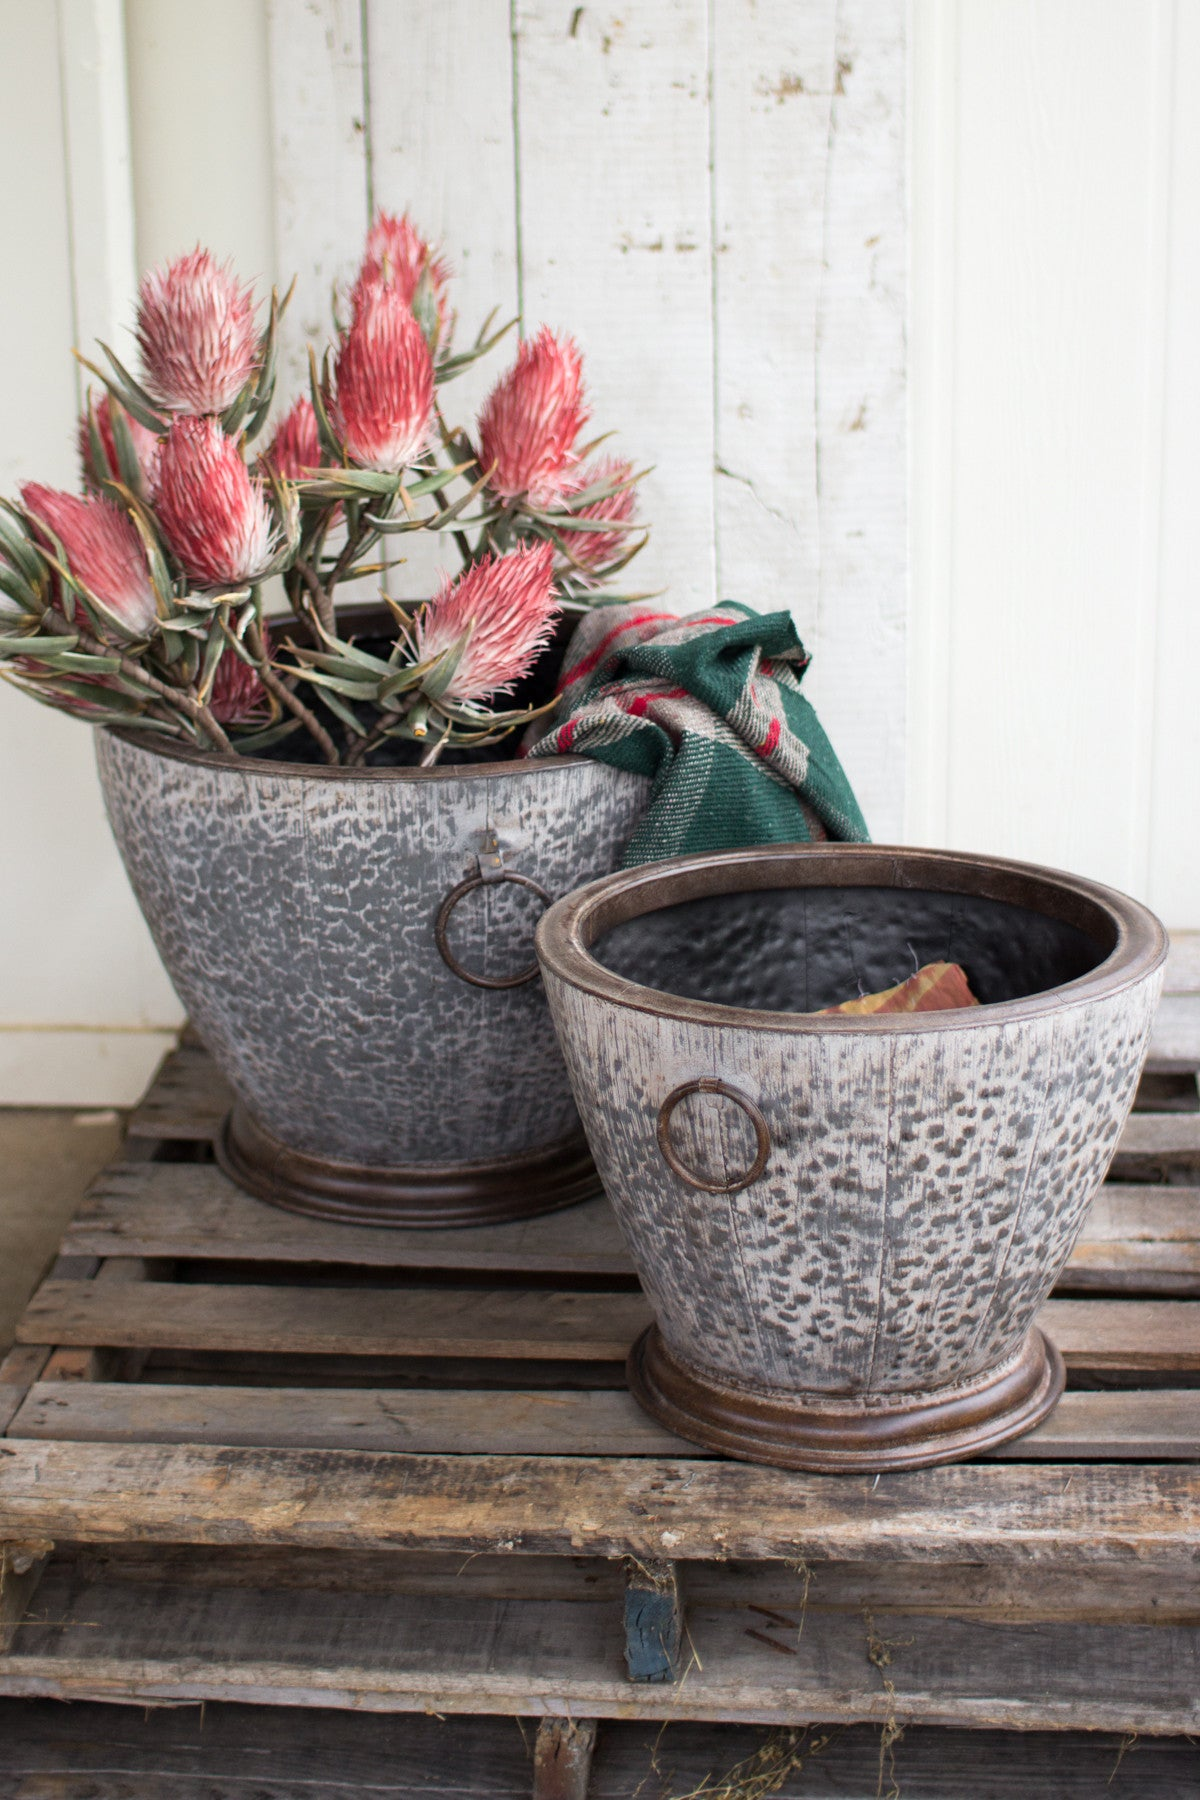 SET OF 2 HAMMERED METAL PLANTERS